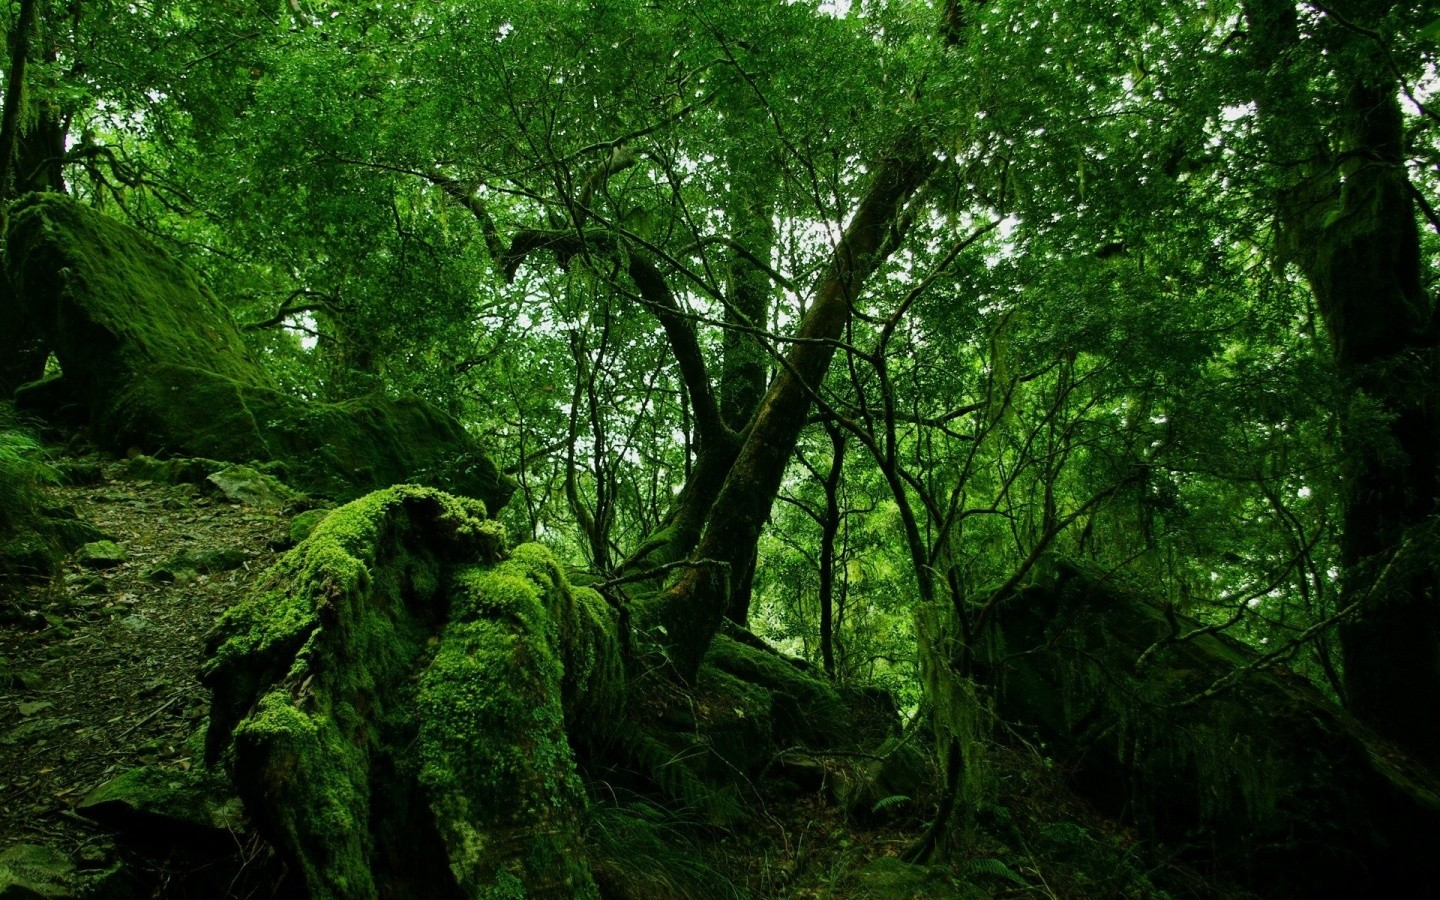 1440x900 Green Forest Vegetation Wallpaper Cool Images Amazing HD 1440x900